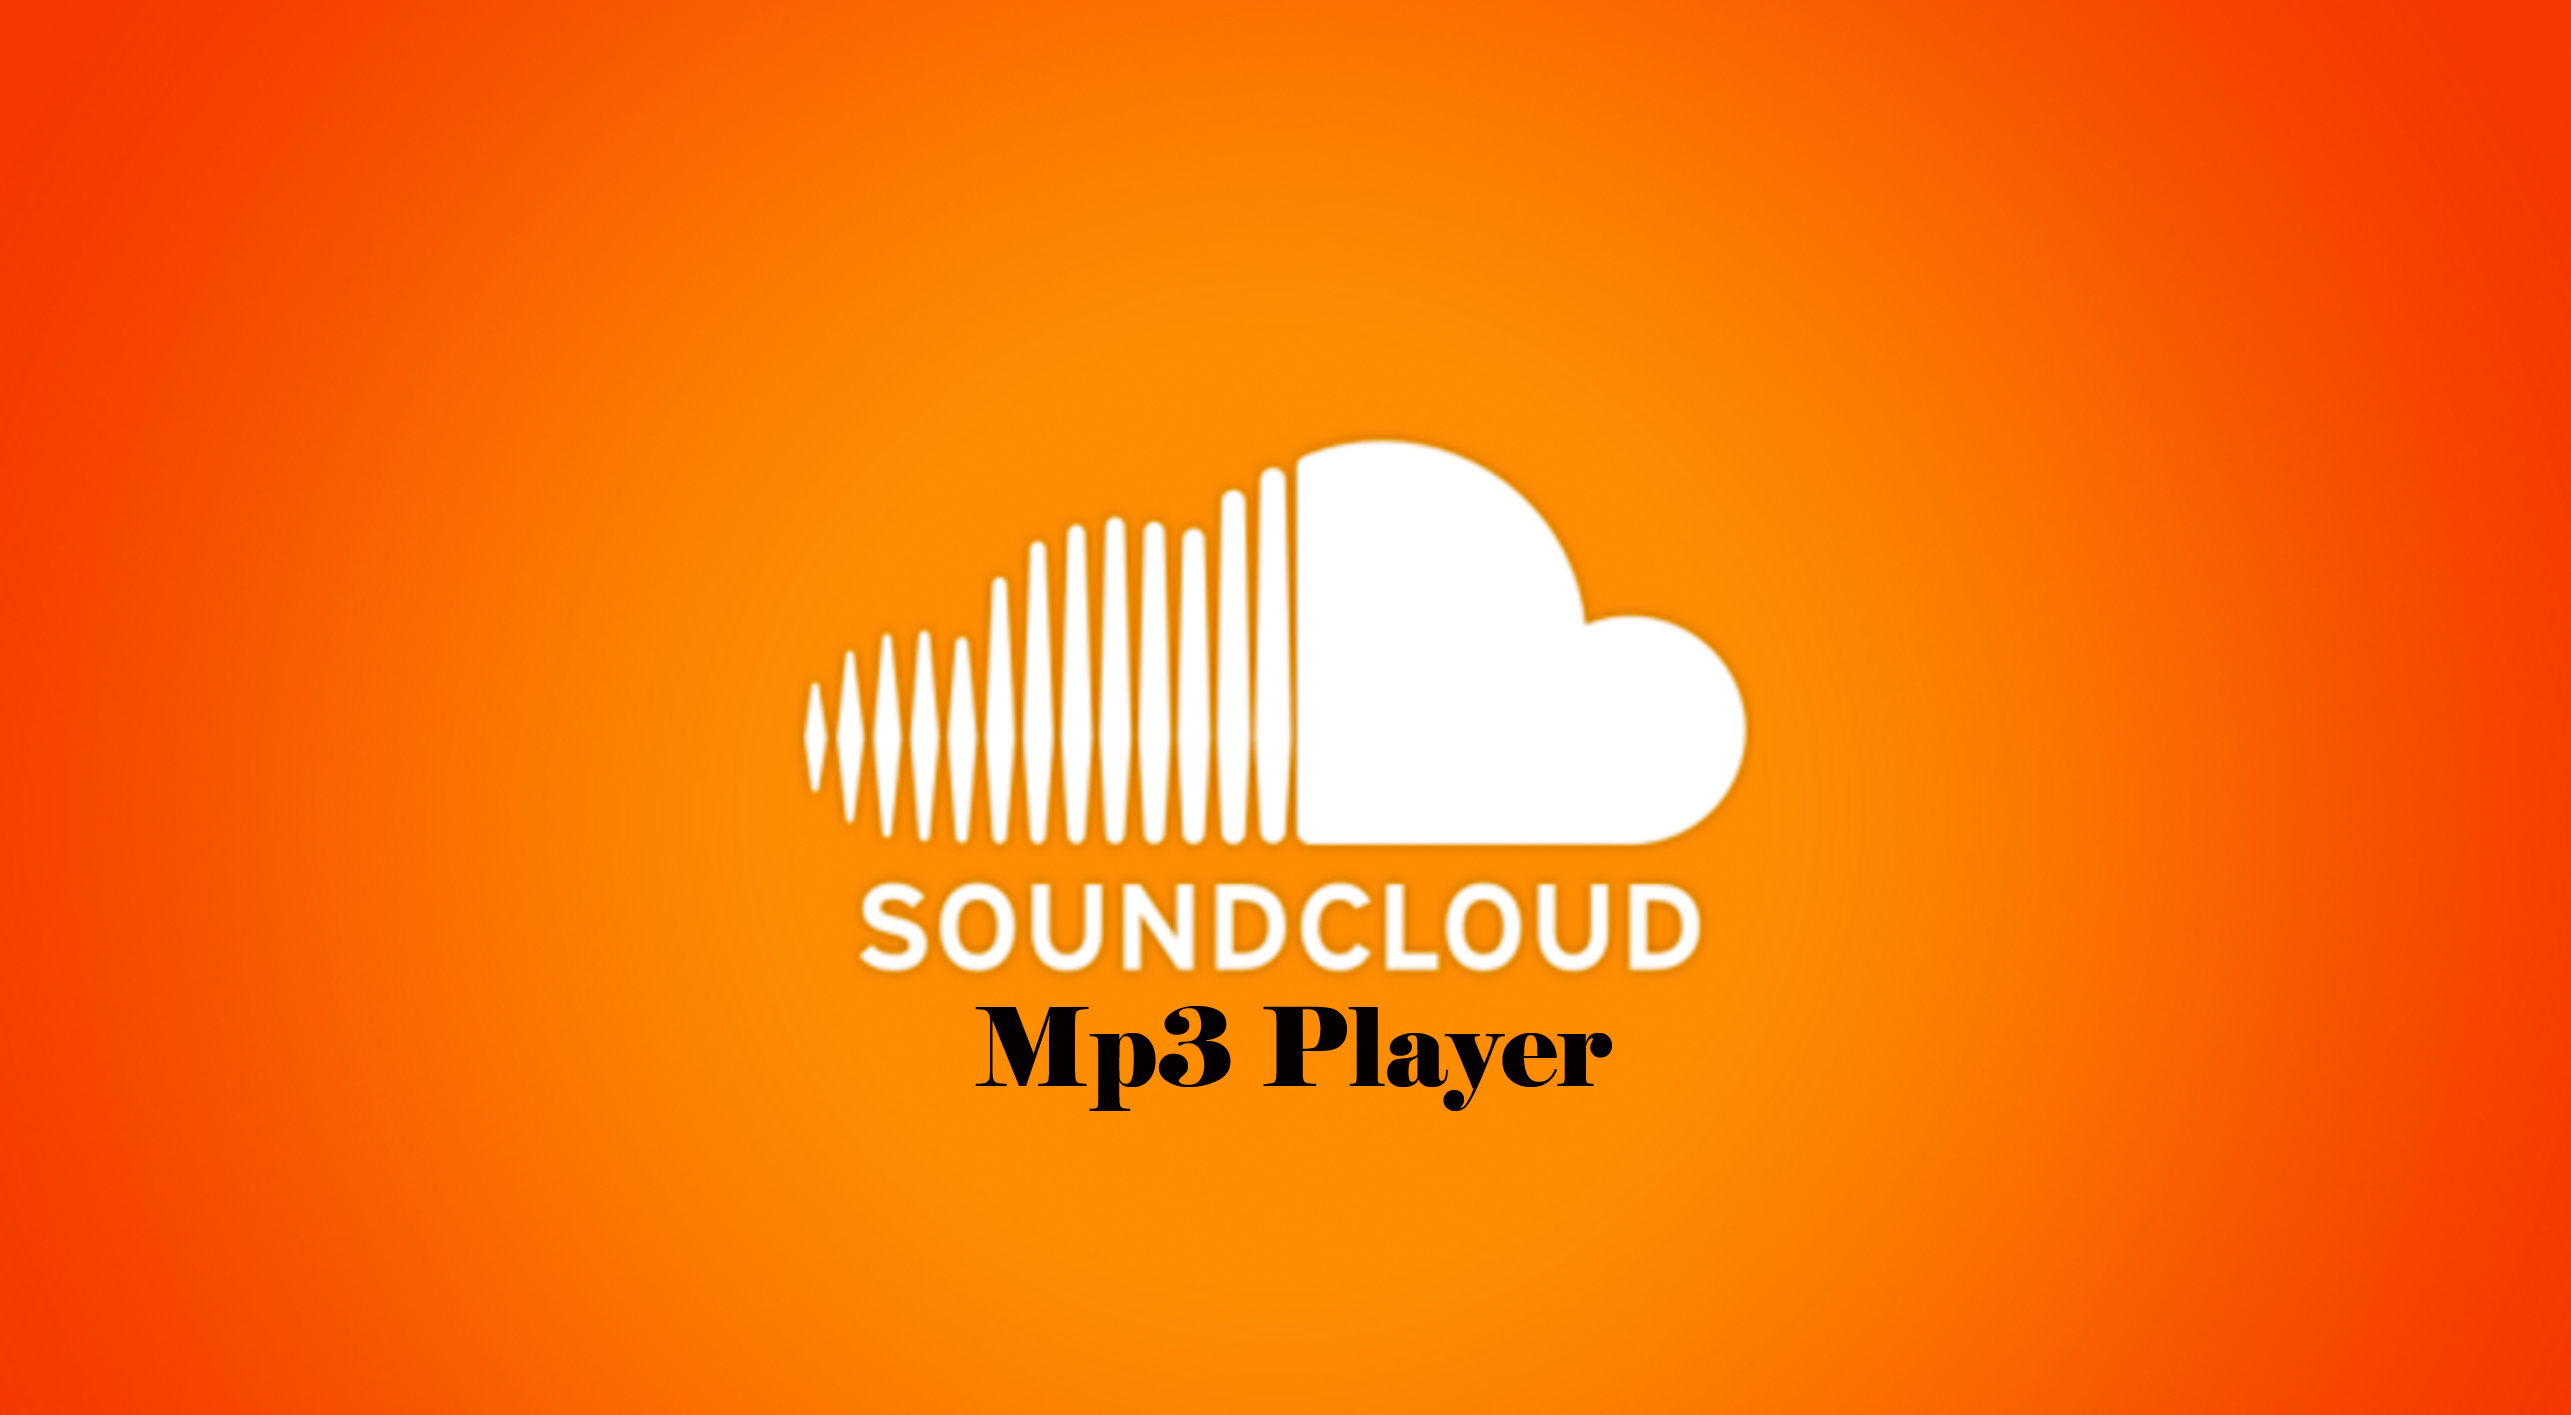 SoundCloud Mp3 Player - SoundCloud Songs